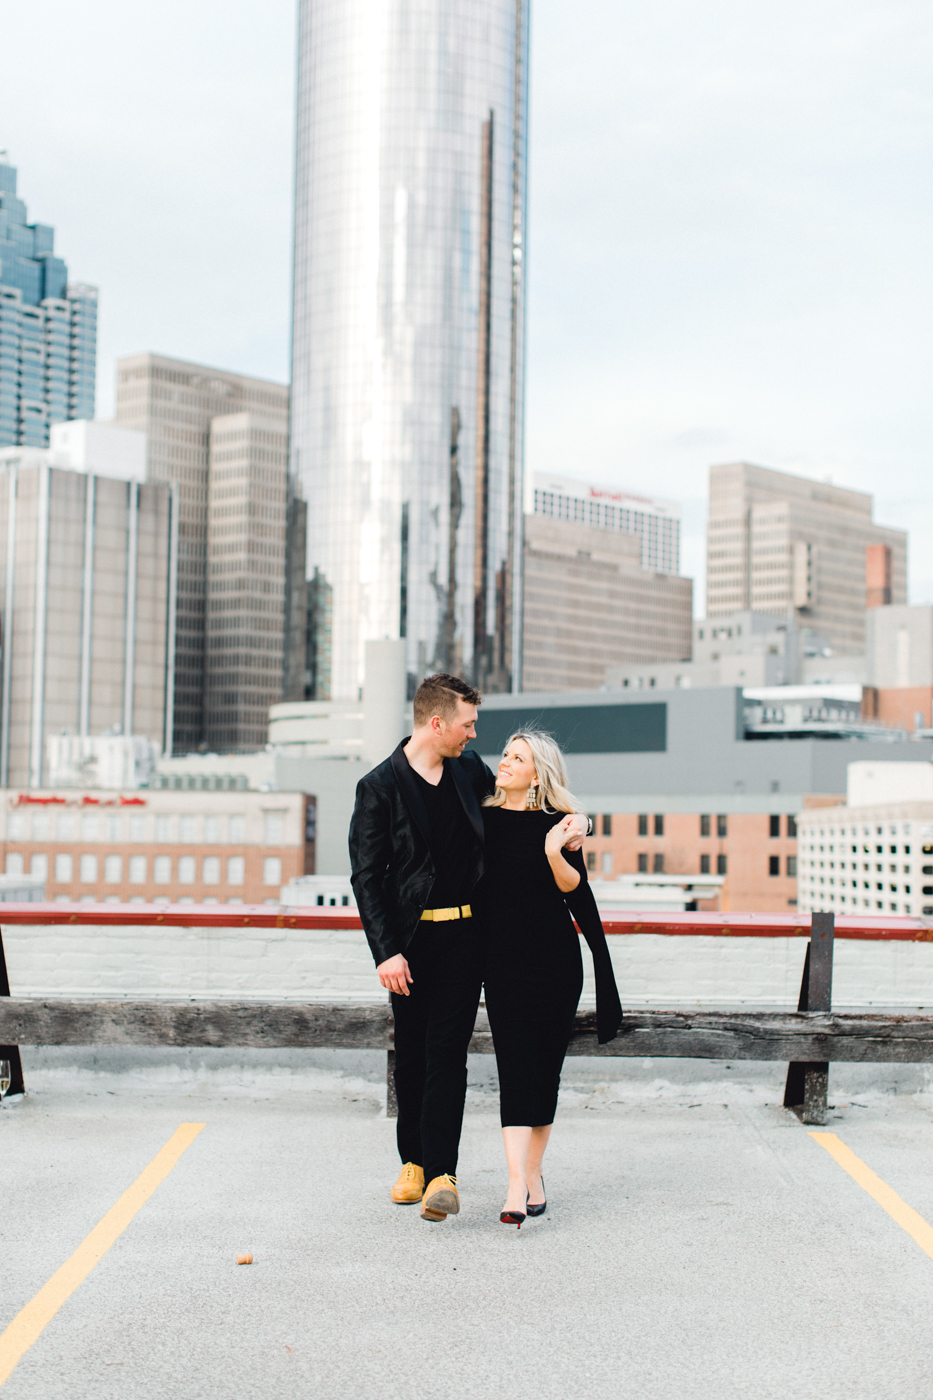 four corners photography best atlanta wedding photographer downtown atlanta engagement session engagement proposal ventanas downtown atlanta wedding atlanta wedding photographer-19.jpg